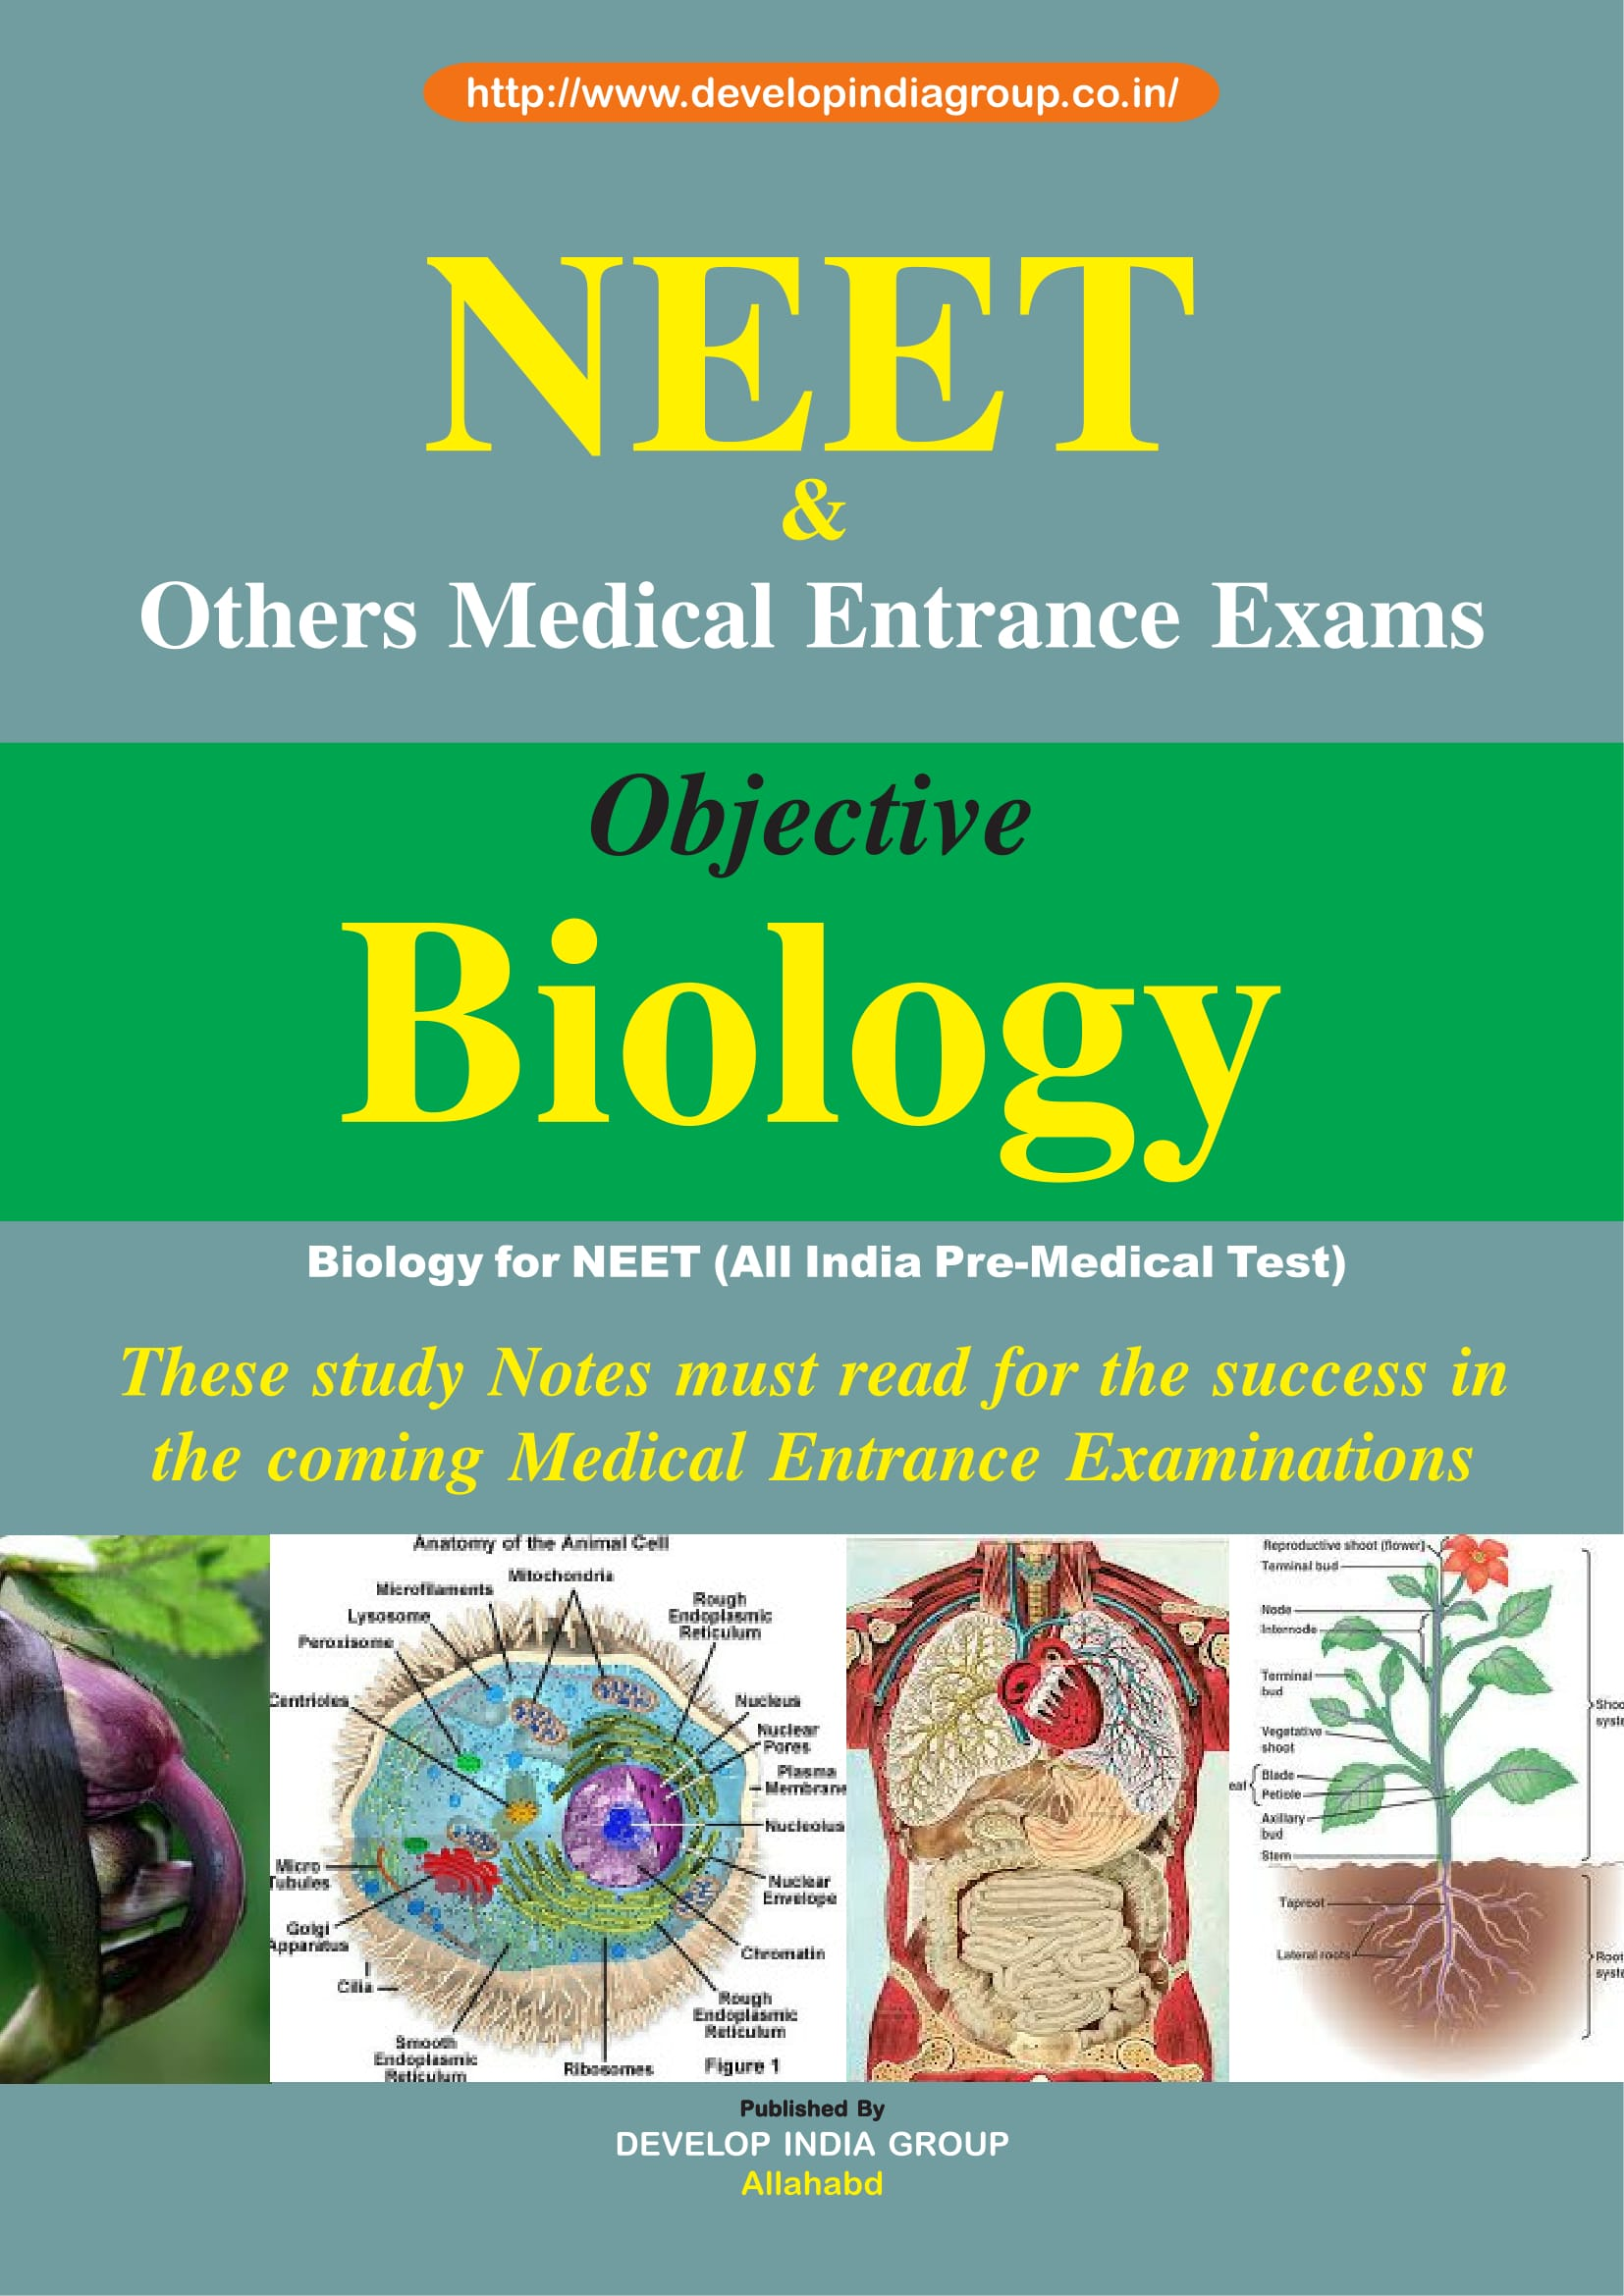 Biology_for_NEET_(All_India_Pre-Medical_Test)